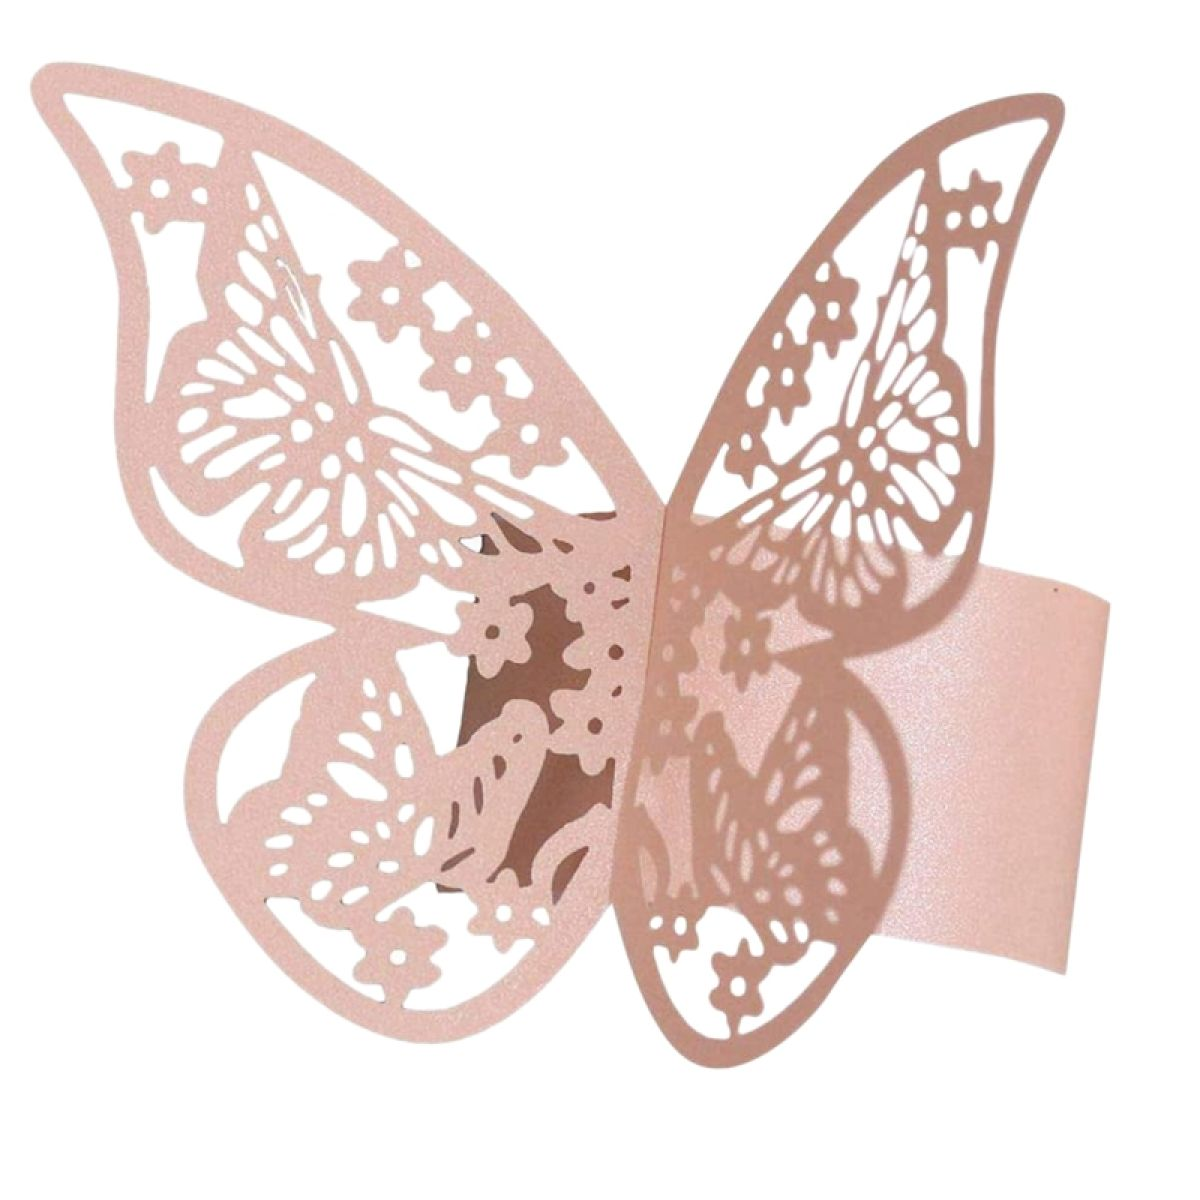 50pcs 3d Butterfly Paper Napkin Rings For Weddings Party Serviette Table Decoration Butterfly Napkin Rings Lazada